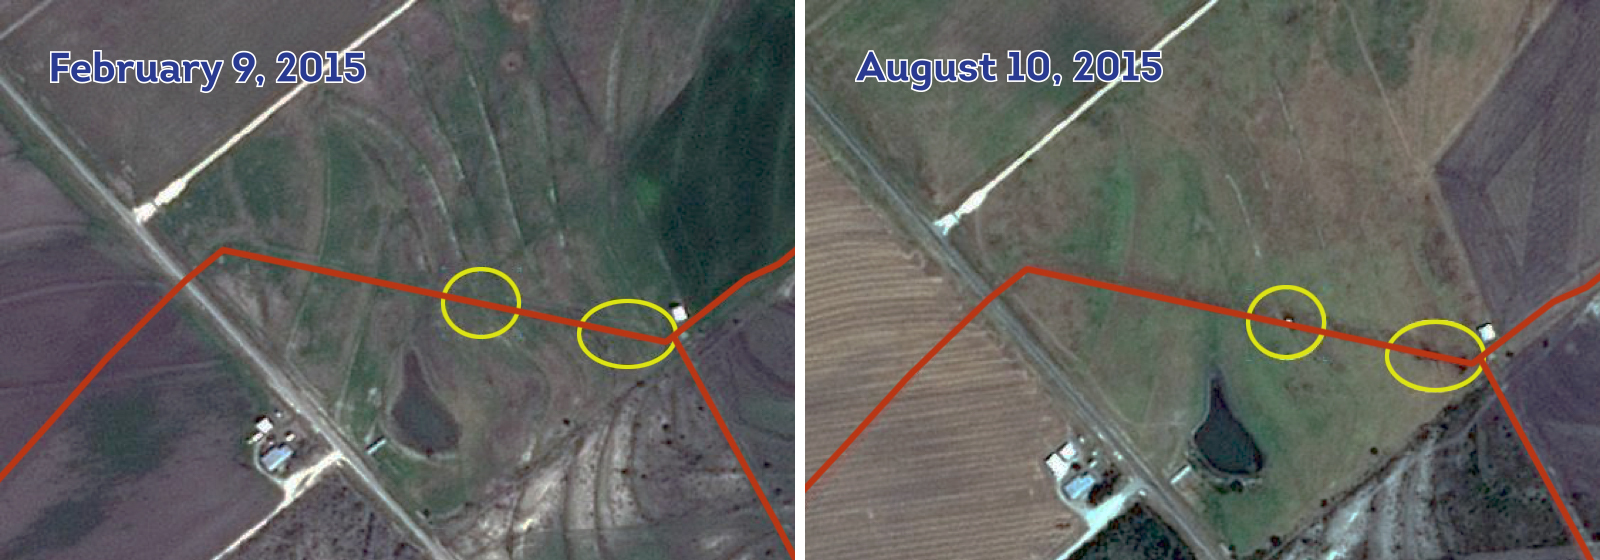 Satelytics applied its techniques to both sets of data and established that there were no leaks in February, but the leaks are clearly visible from satellite imagery capturedin August.